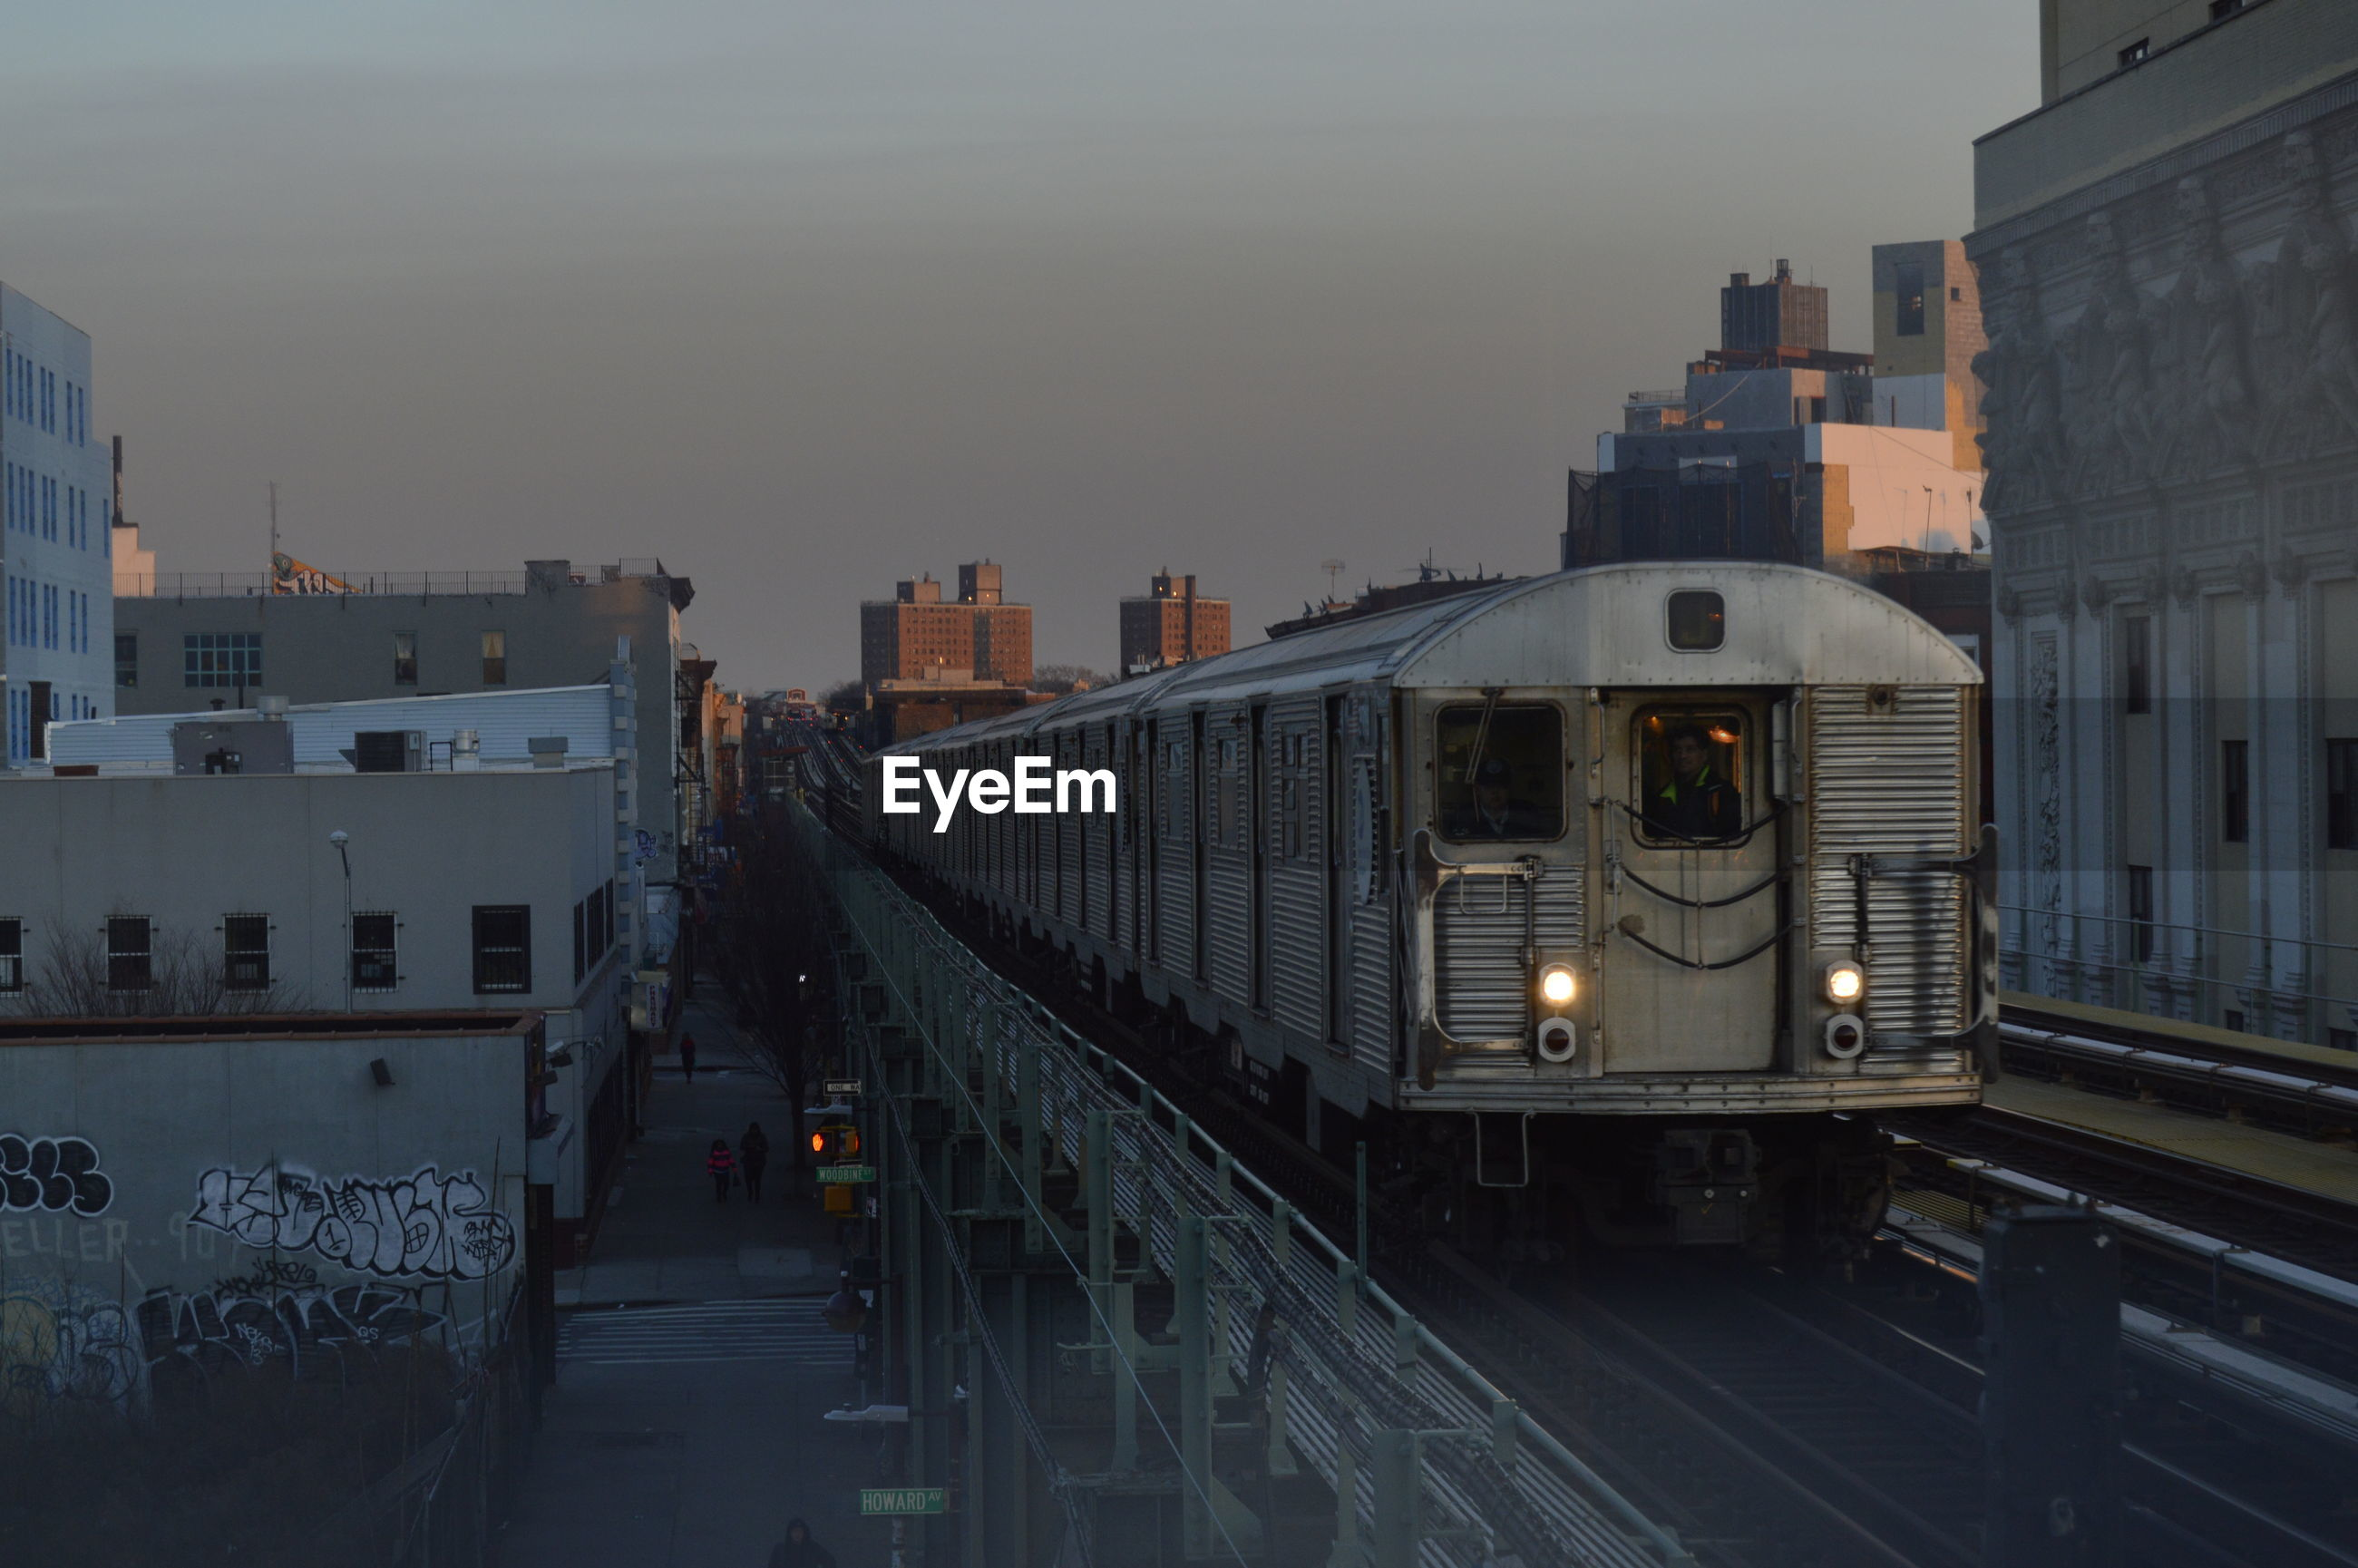 Train against sky in city during sunset